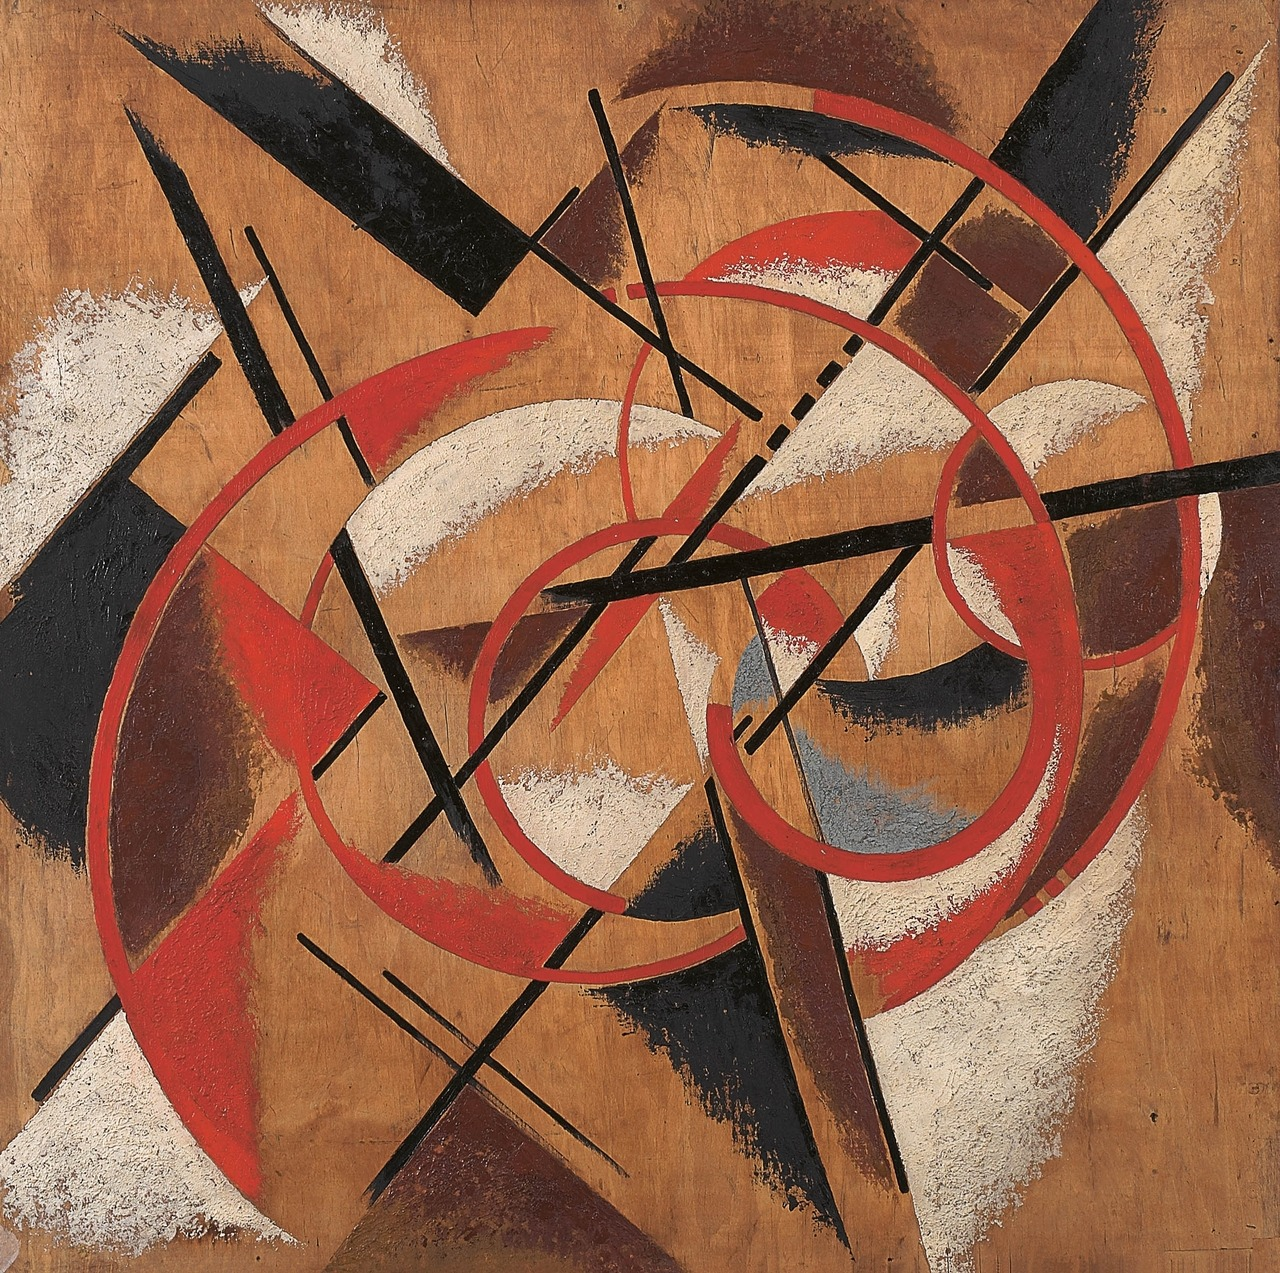 Liubov Popova, Spatial Force Construction Oil and marble dust on plywood 1920-21